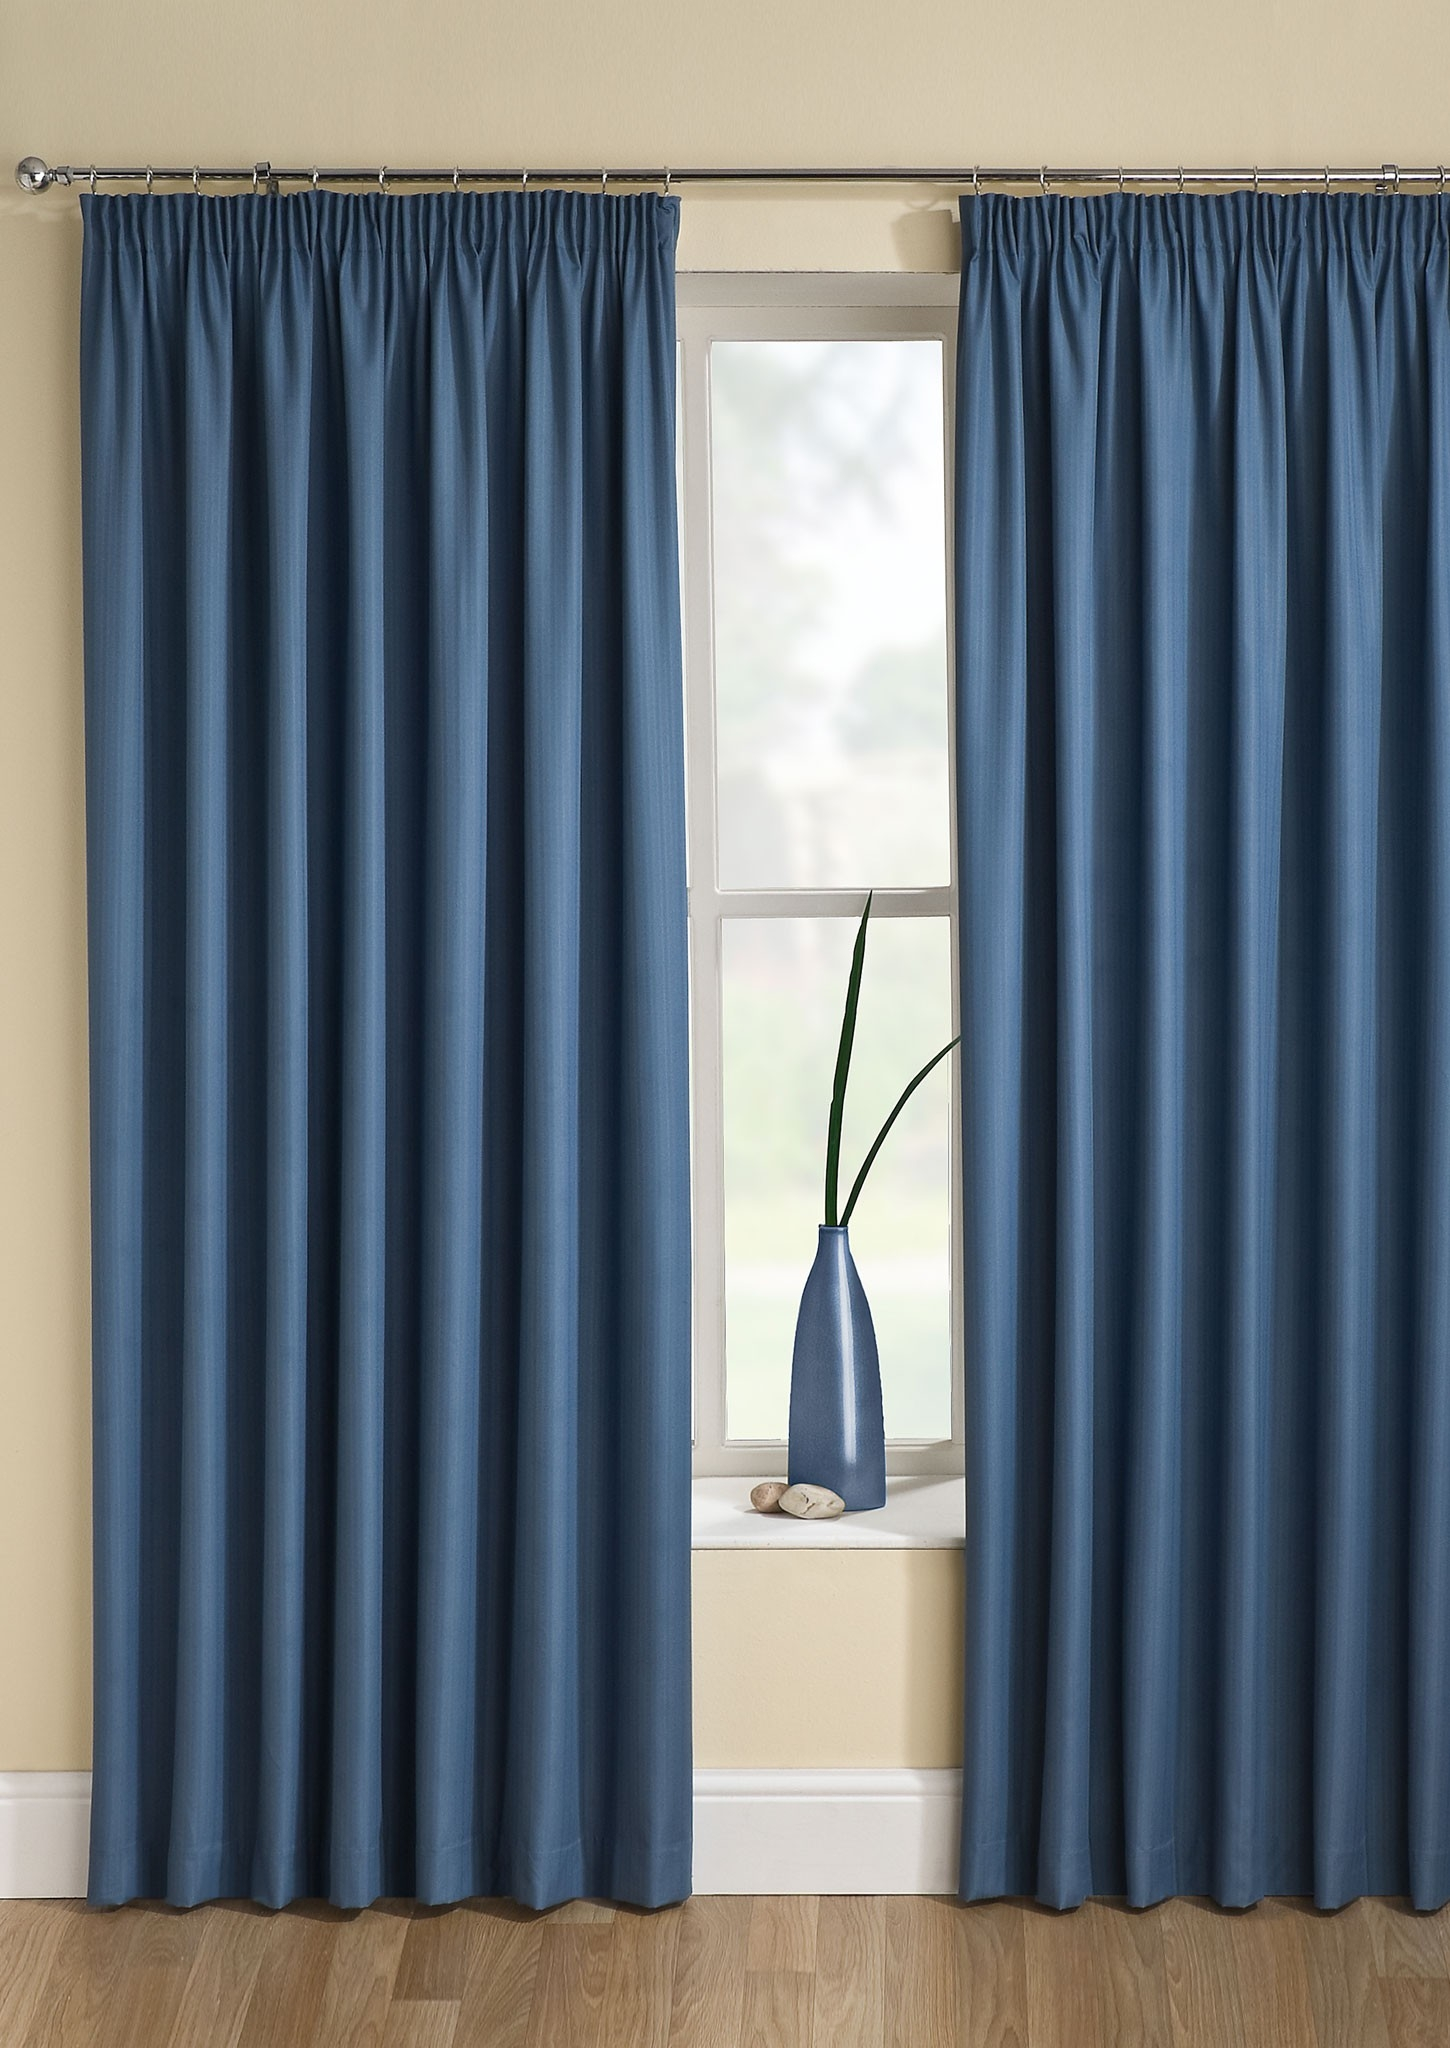 Tranquility Wedgewood Thermal Jacquard Pencil Pleat Curtains Throughout Pencil Pleat Curtains (Image 15 of 15)